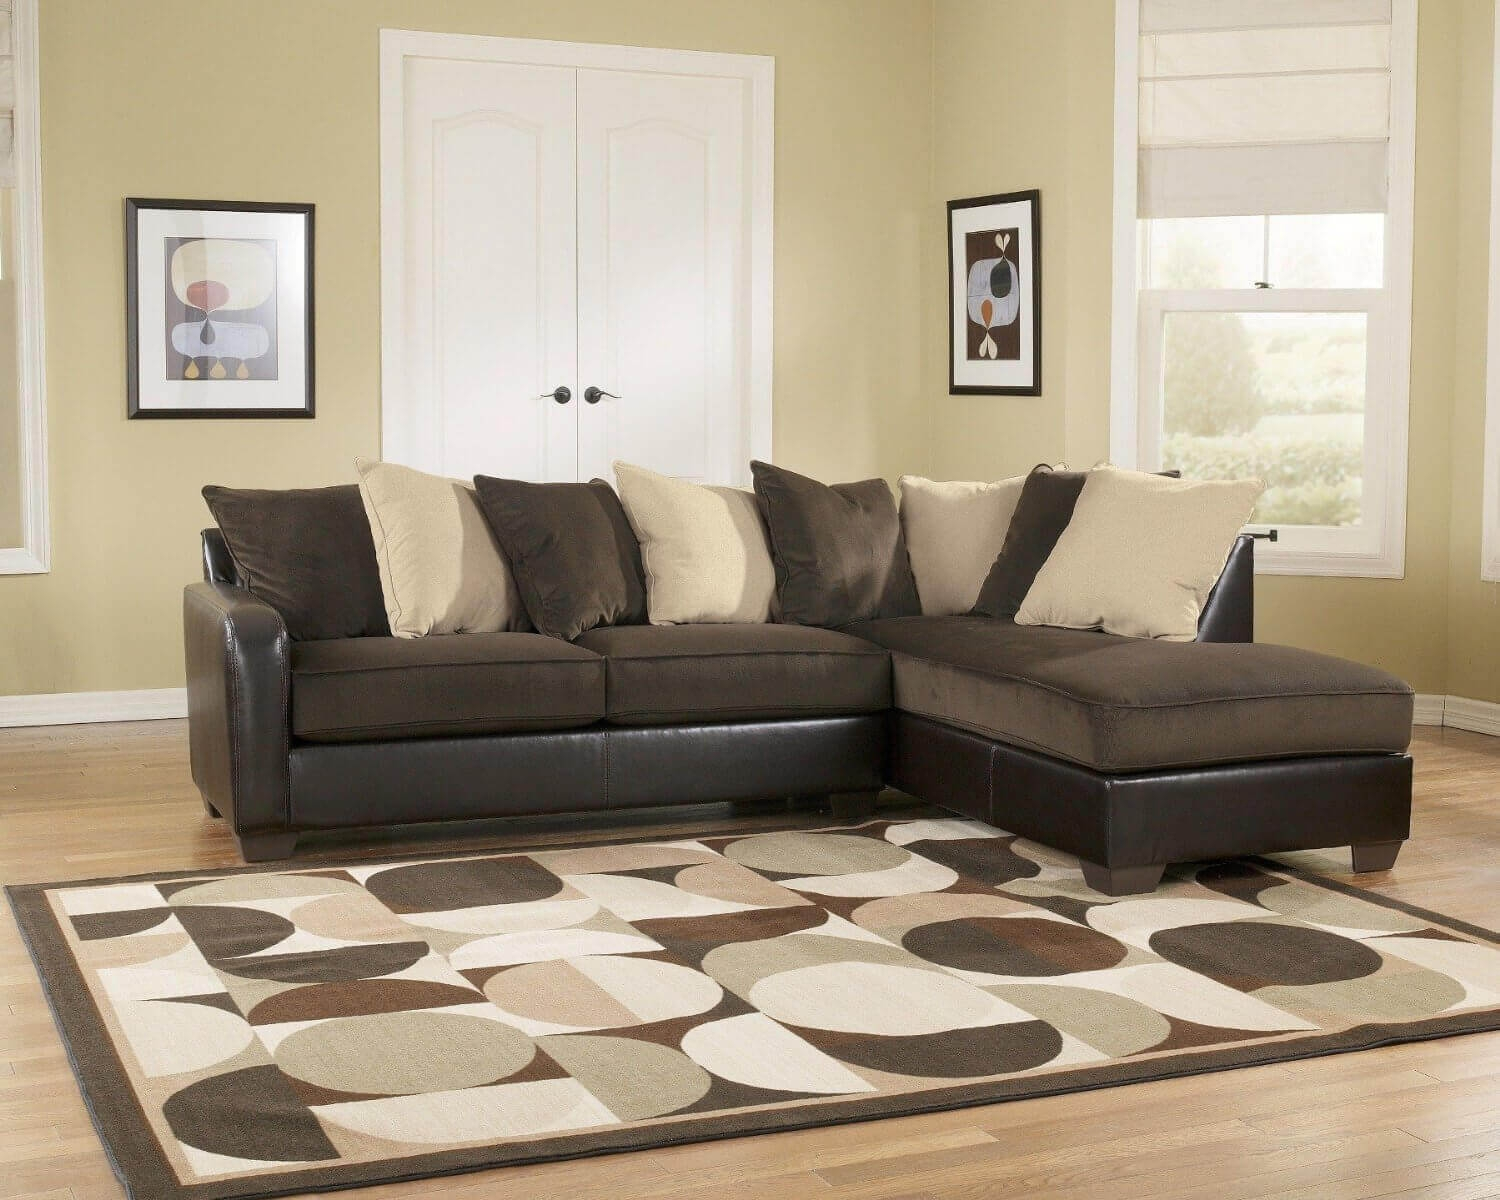 100 Beautiful Sectional Sofas Under 1000 In Extra Wide Sectional Sofas (View 15 of 15)